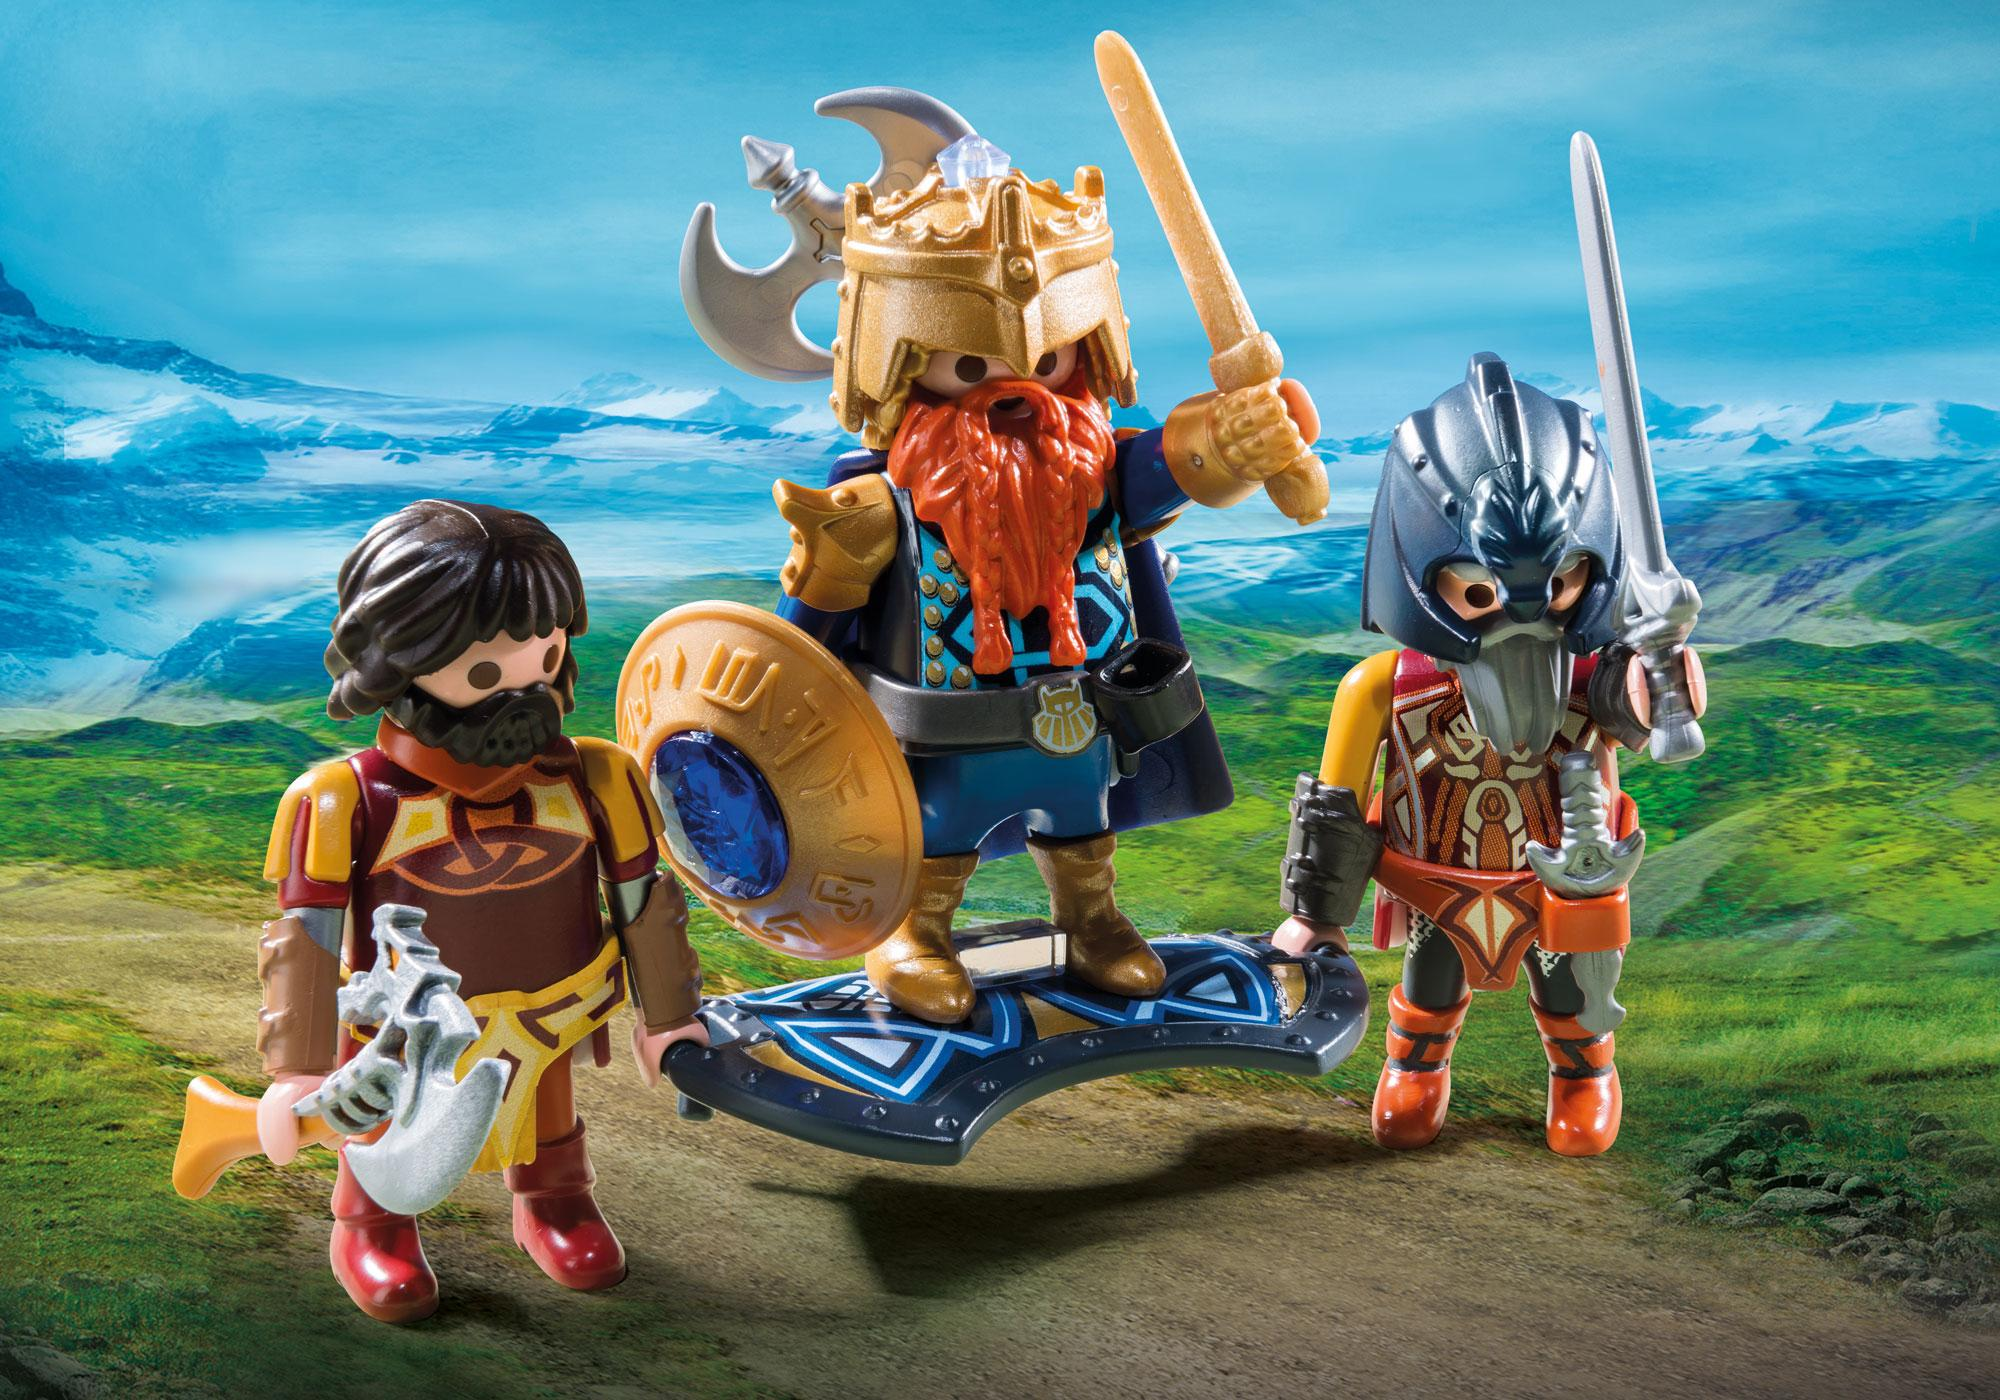 http://media.playmobil.com/i/playmobil/9344_product_extra1